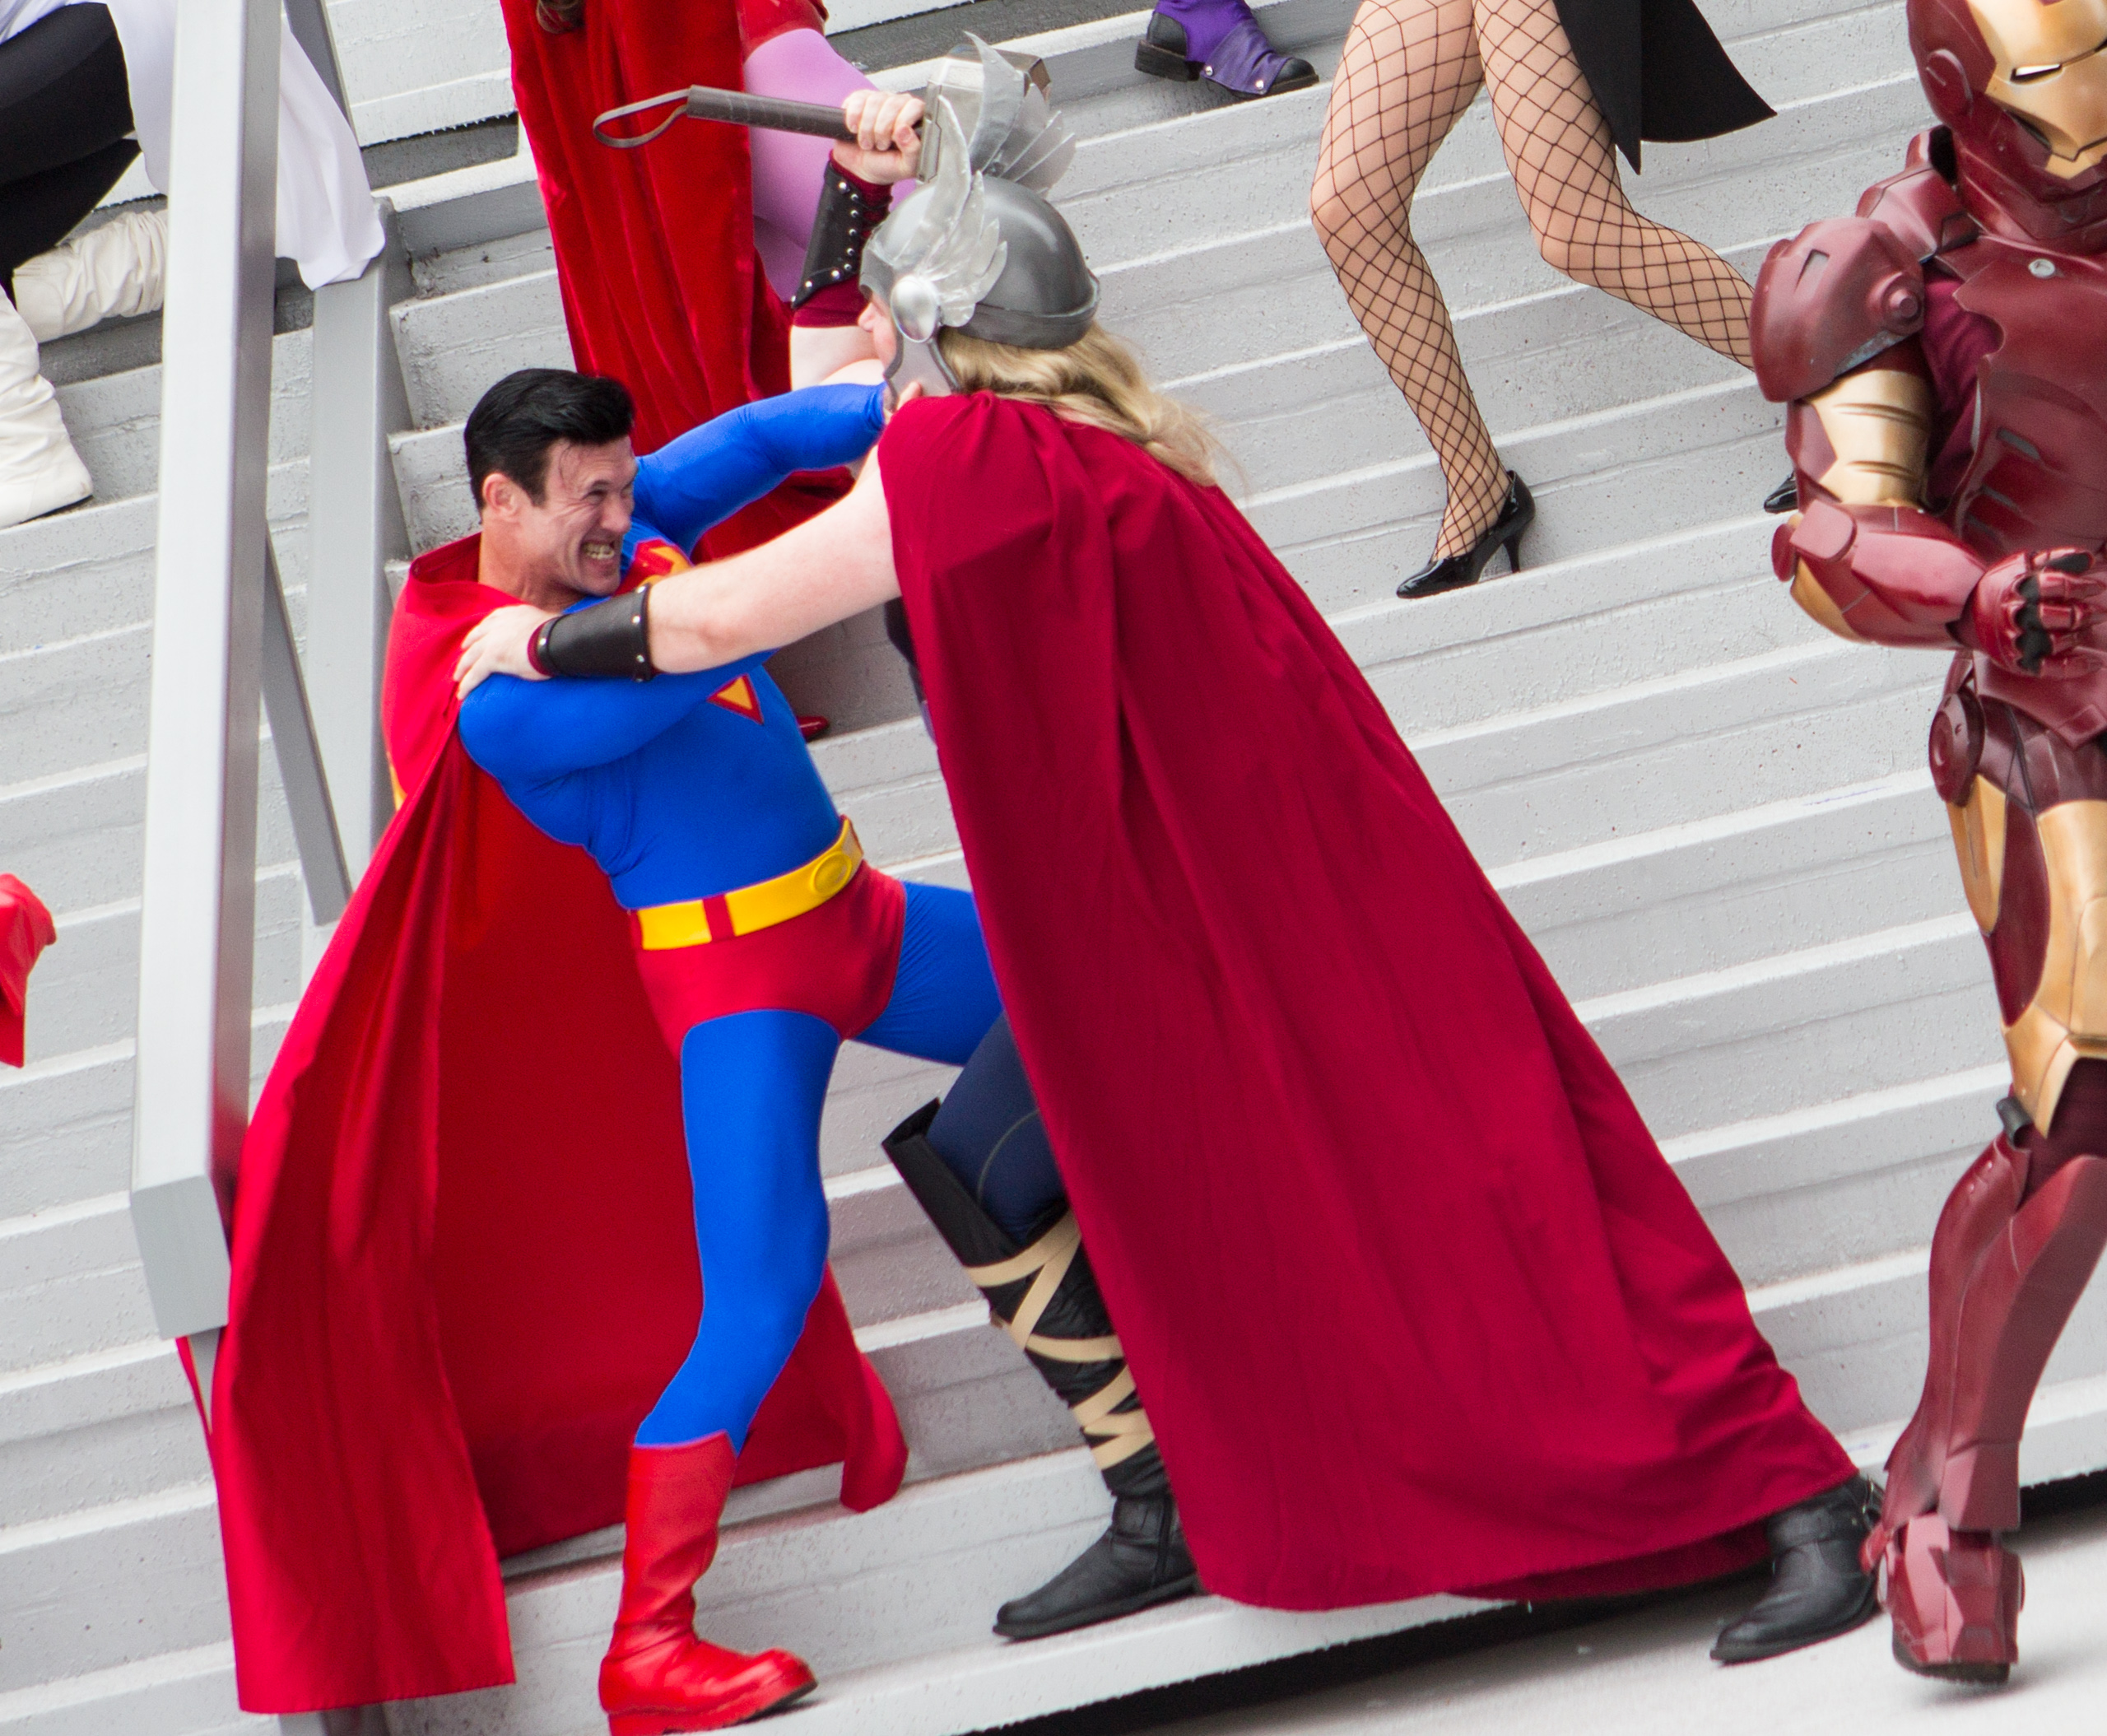 This picture is copyright free on Wikimedia commons  https://commons.wikimedia.org/wiki/File:Dragon_Con_2013_-_JLA_vs_Avengers_Shoot_(9668214483).jpg    https://www.flickr.com/photos/25569106@N00/9668214483